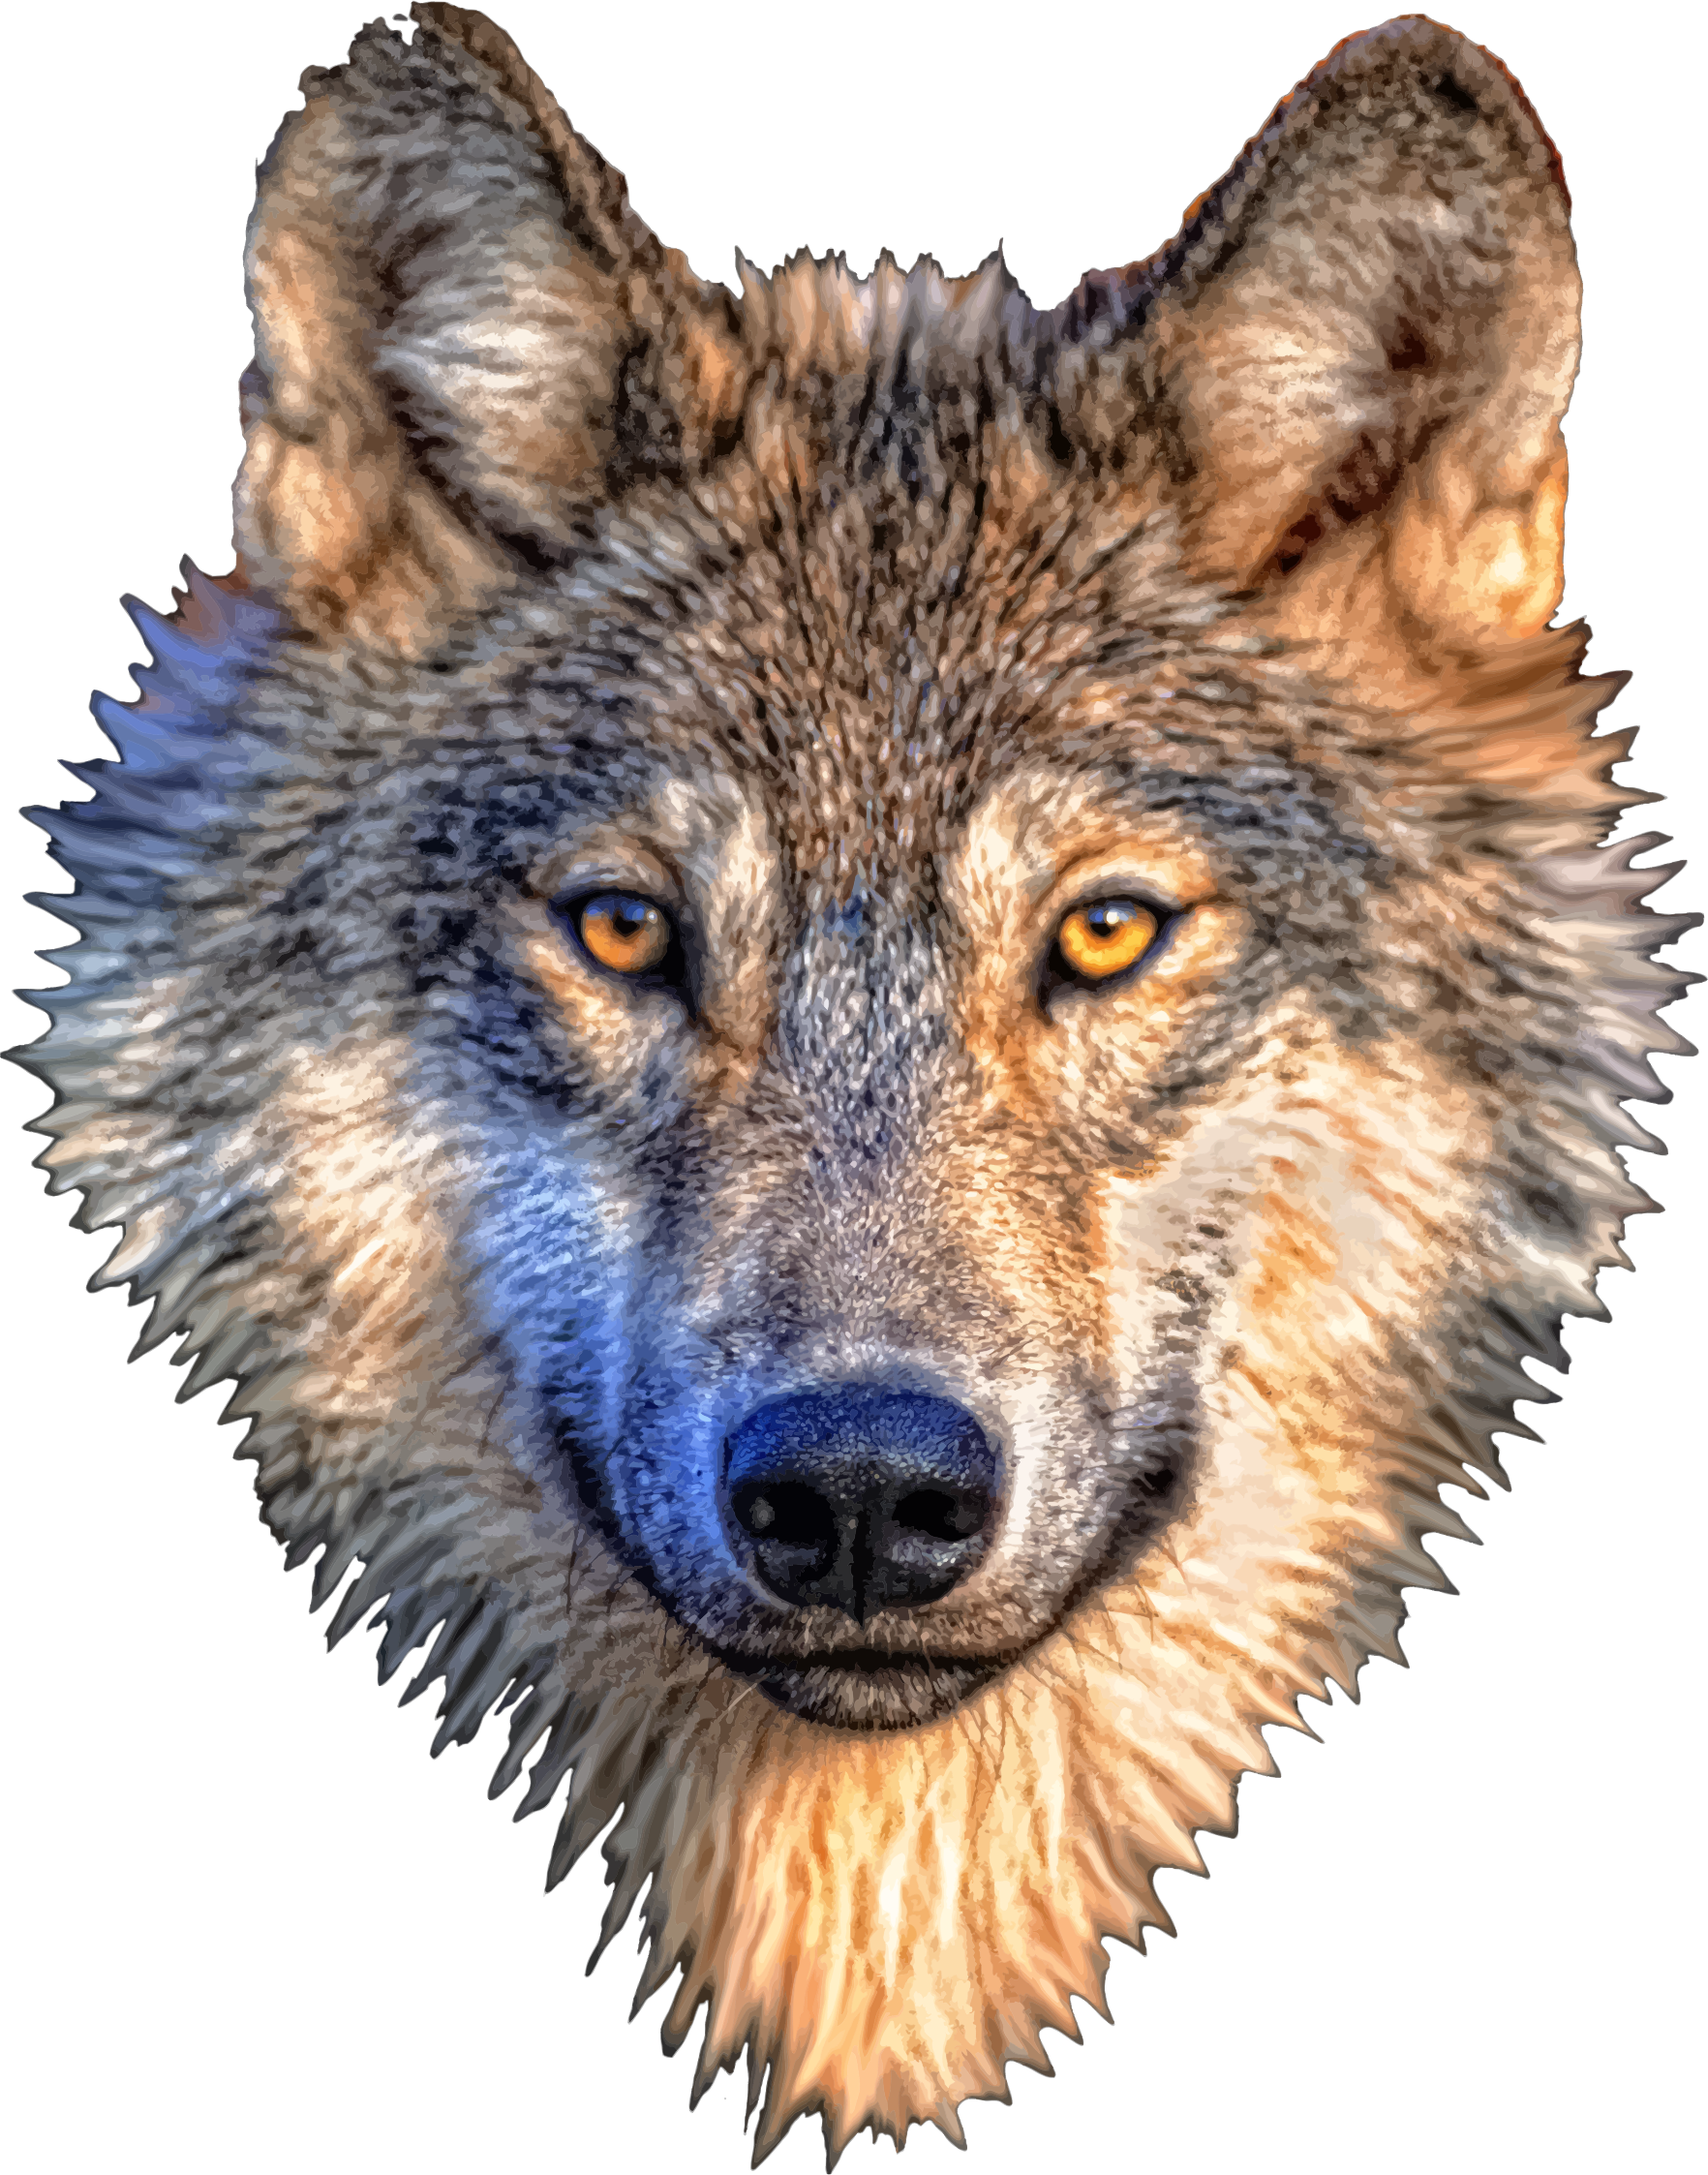 Animal head png. Wolf transparent images pluspng